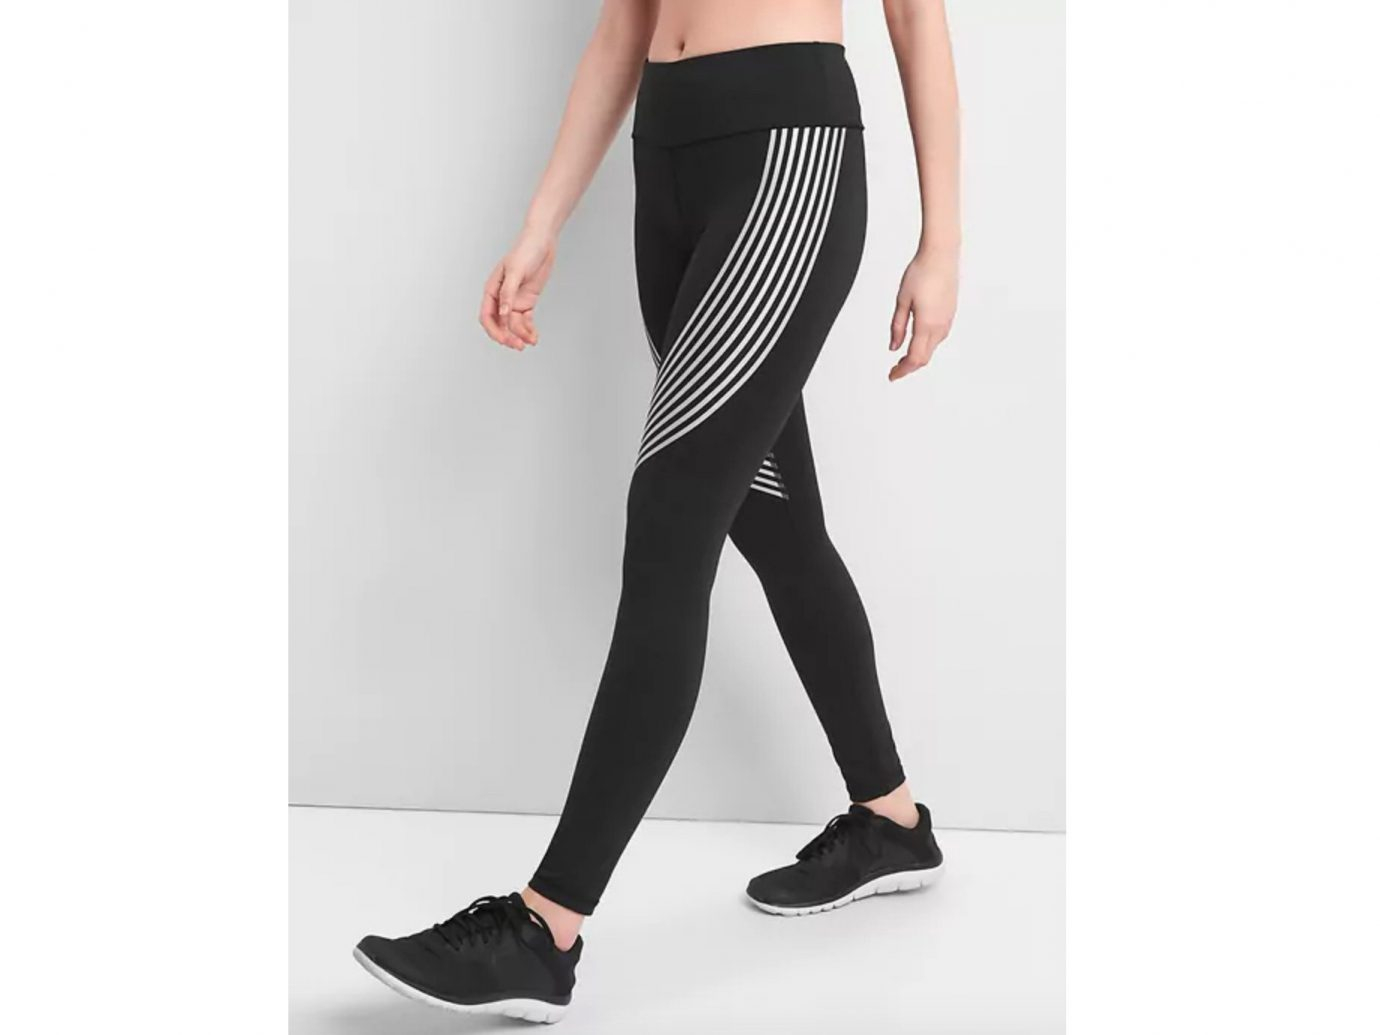 Health + Wellness Style + Design Travel Shop clothing person woman tights leggings waist human leg trousers abdomen active pants active undergarment joint female trouser